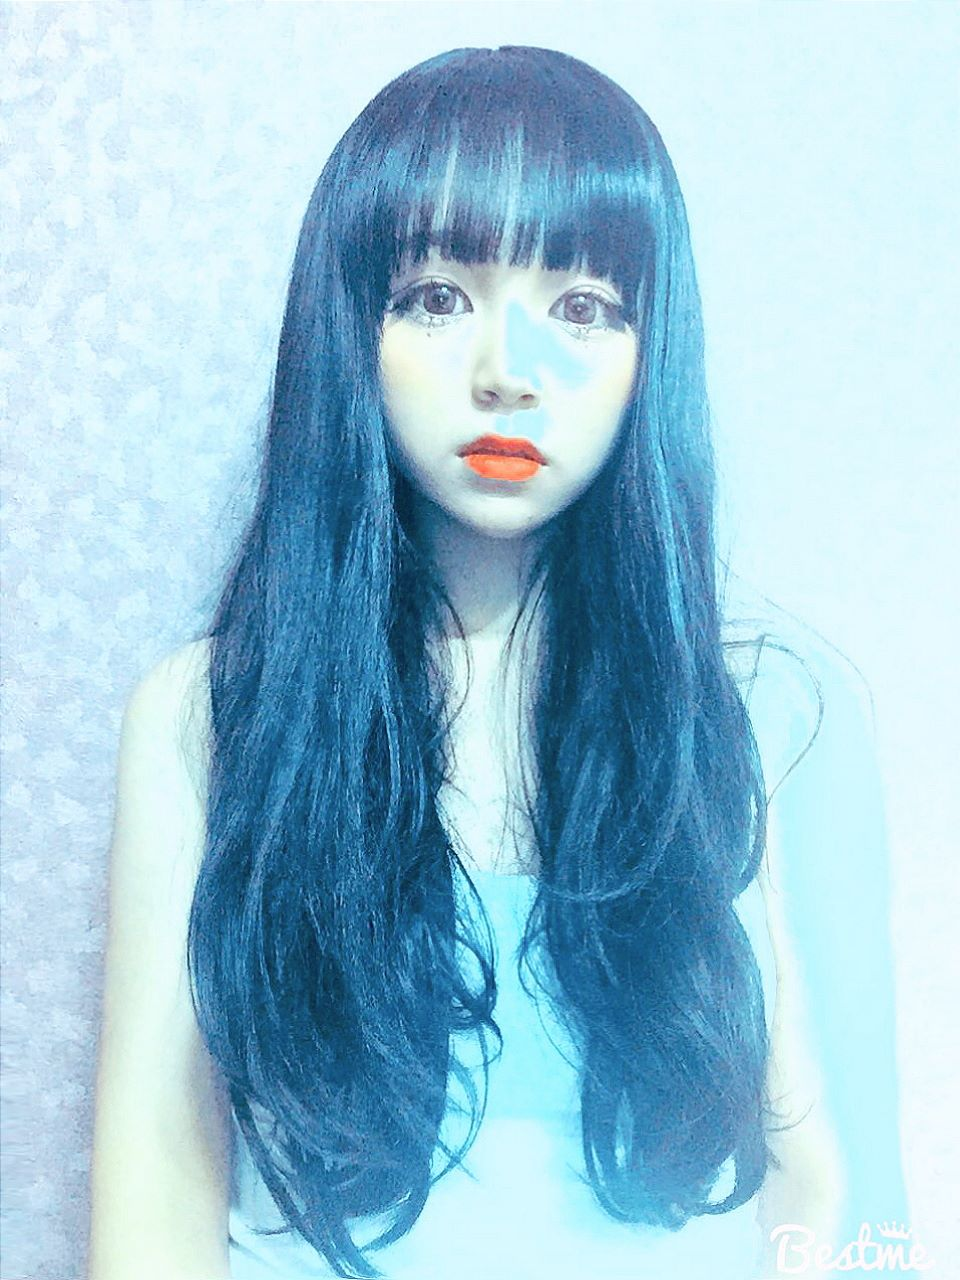 """Fig. 18 -- Hye-ji's """"Best Me"""" picture from her Facebook picture albums,with wig, generous application of the """"Liquefy"""" filter in Photoshop, and creative color filters. Notably, Hye-ji has no pictures of herself on social media without this significant alteration of her eyes. In fact, this unrealistic feature in her pictures is one of the distinguishing (and possibly defining)aspects of her portraits and self-portraits."""